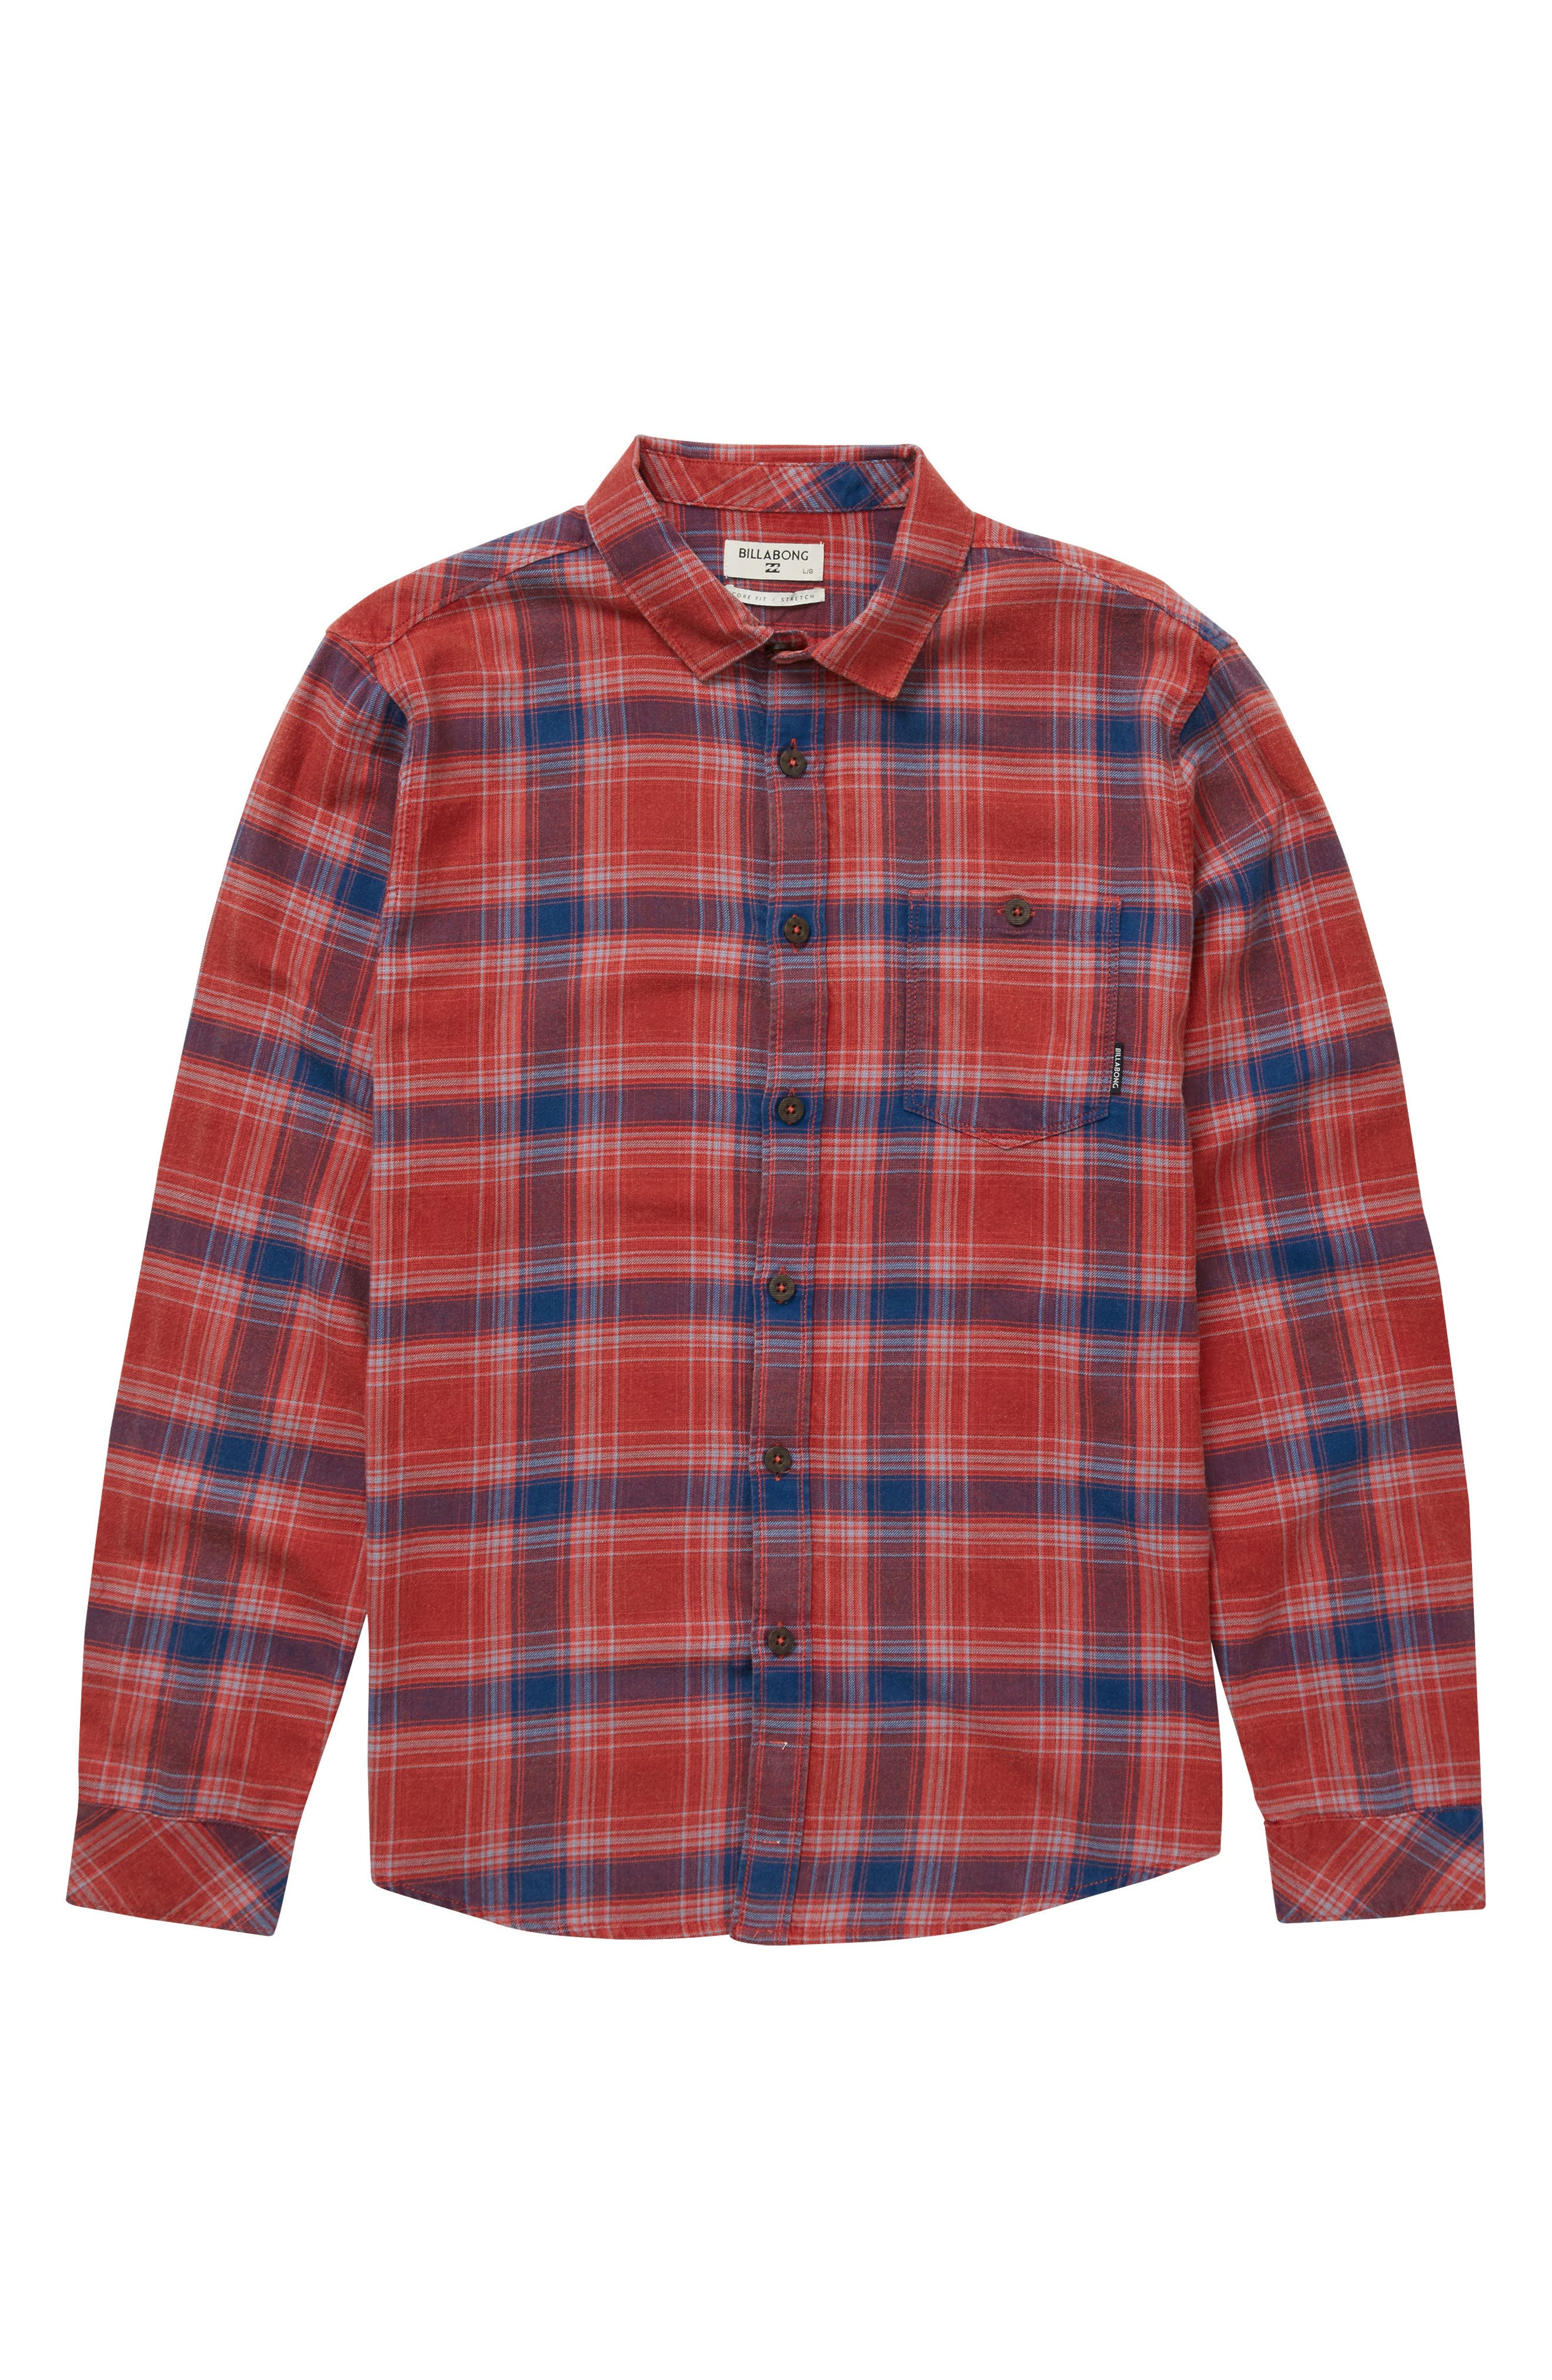 Freemont Plaid Flannel Shirt,                             Main thumbnail 1, color,                             Red